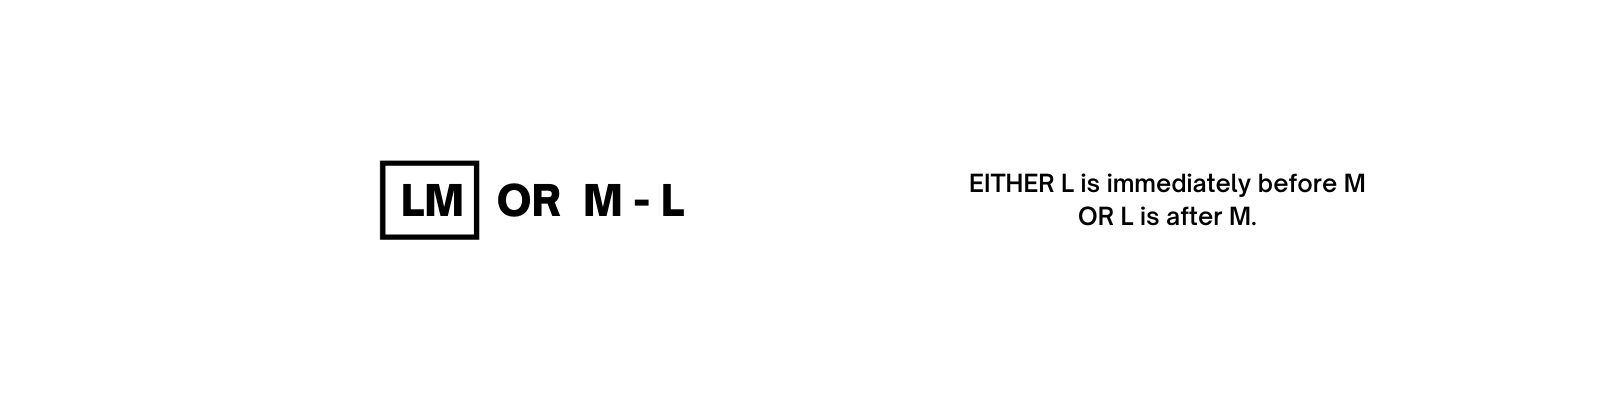 Either LM or L is after M.